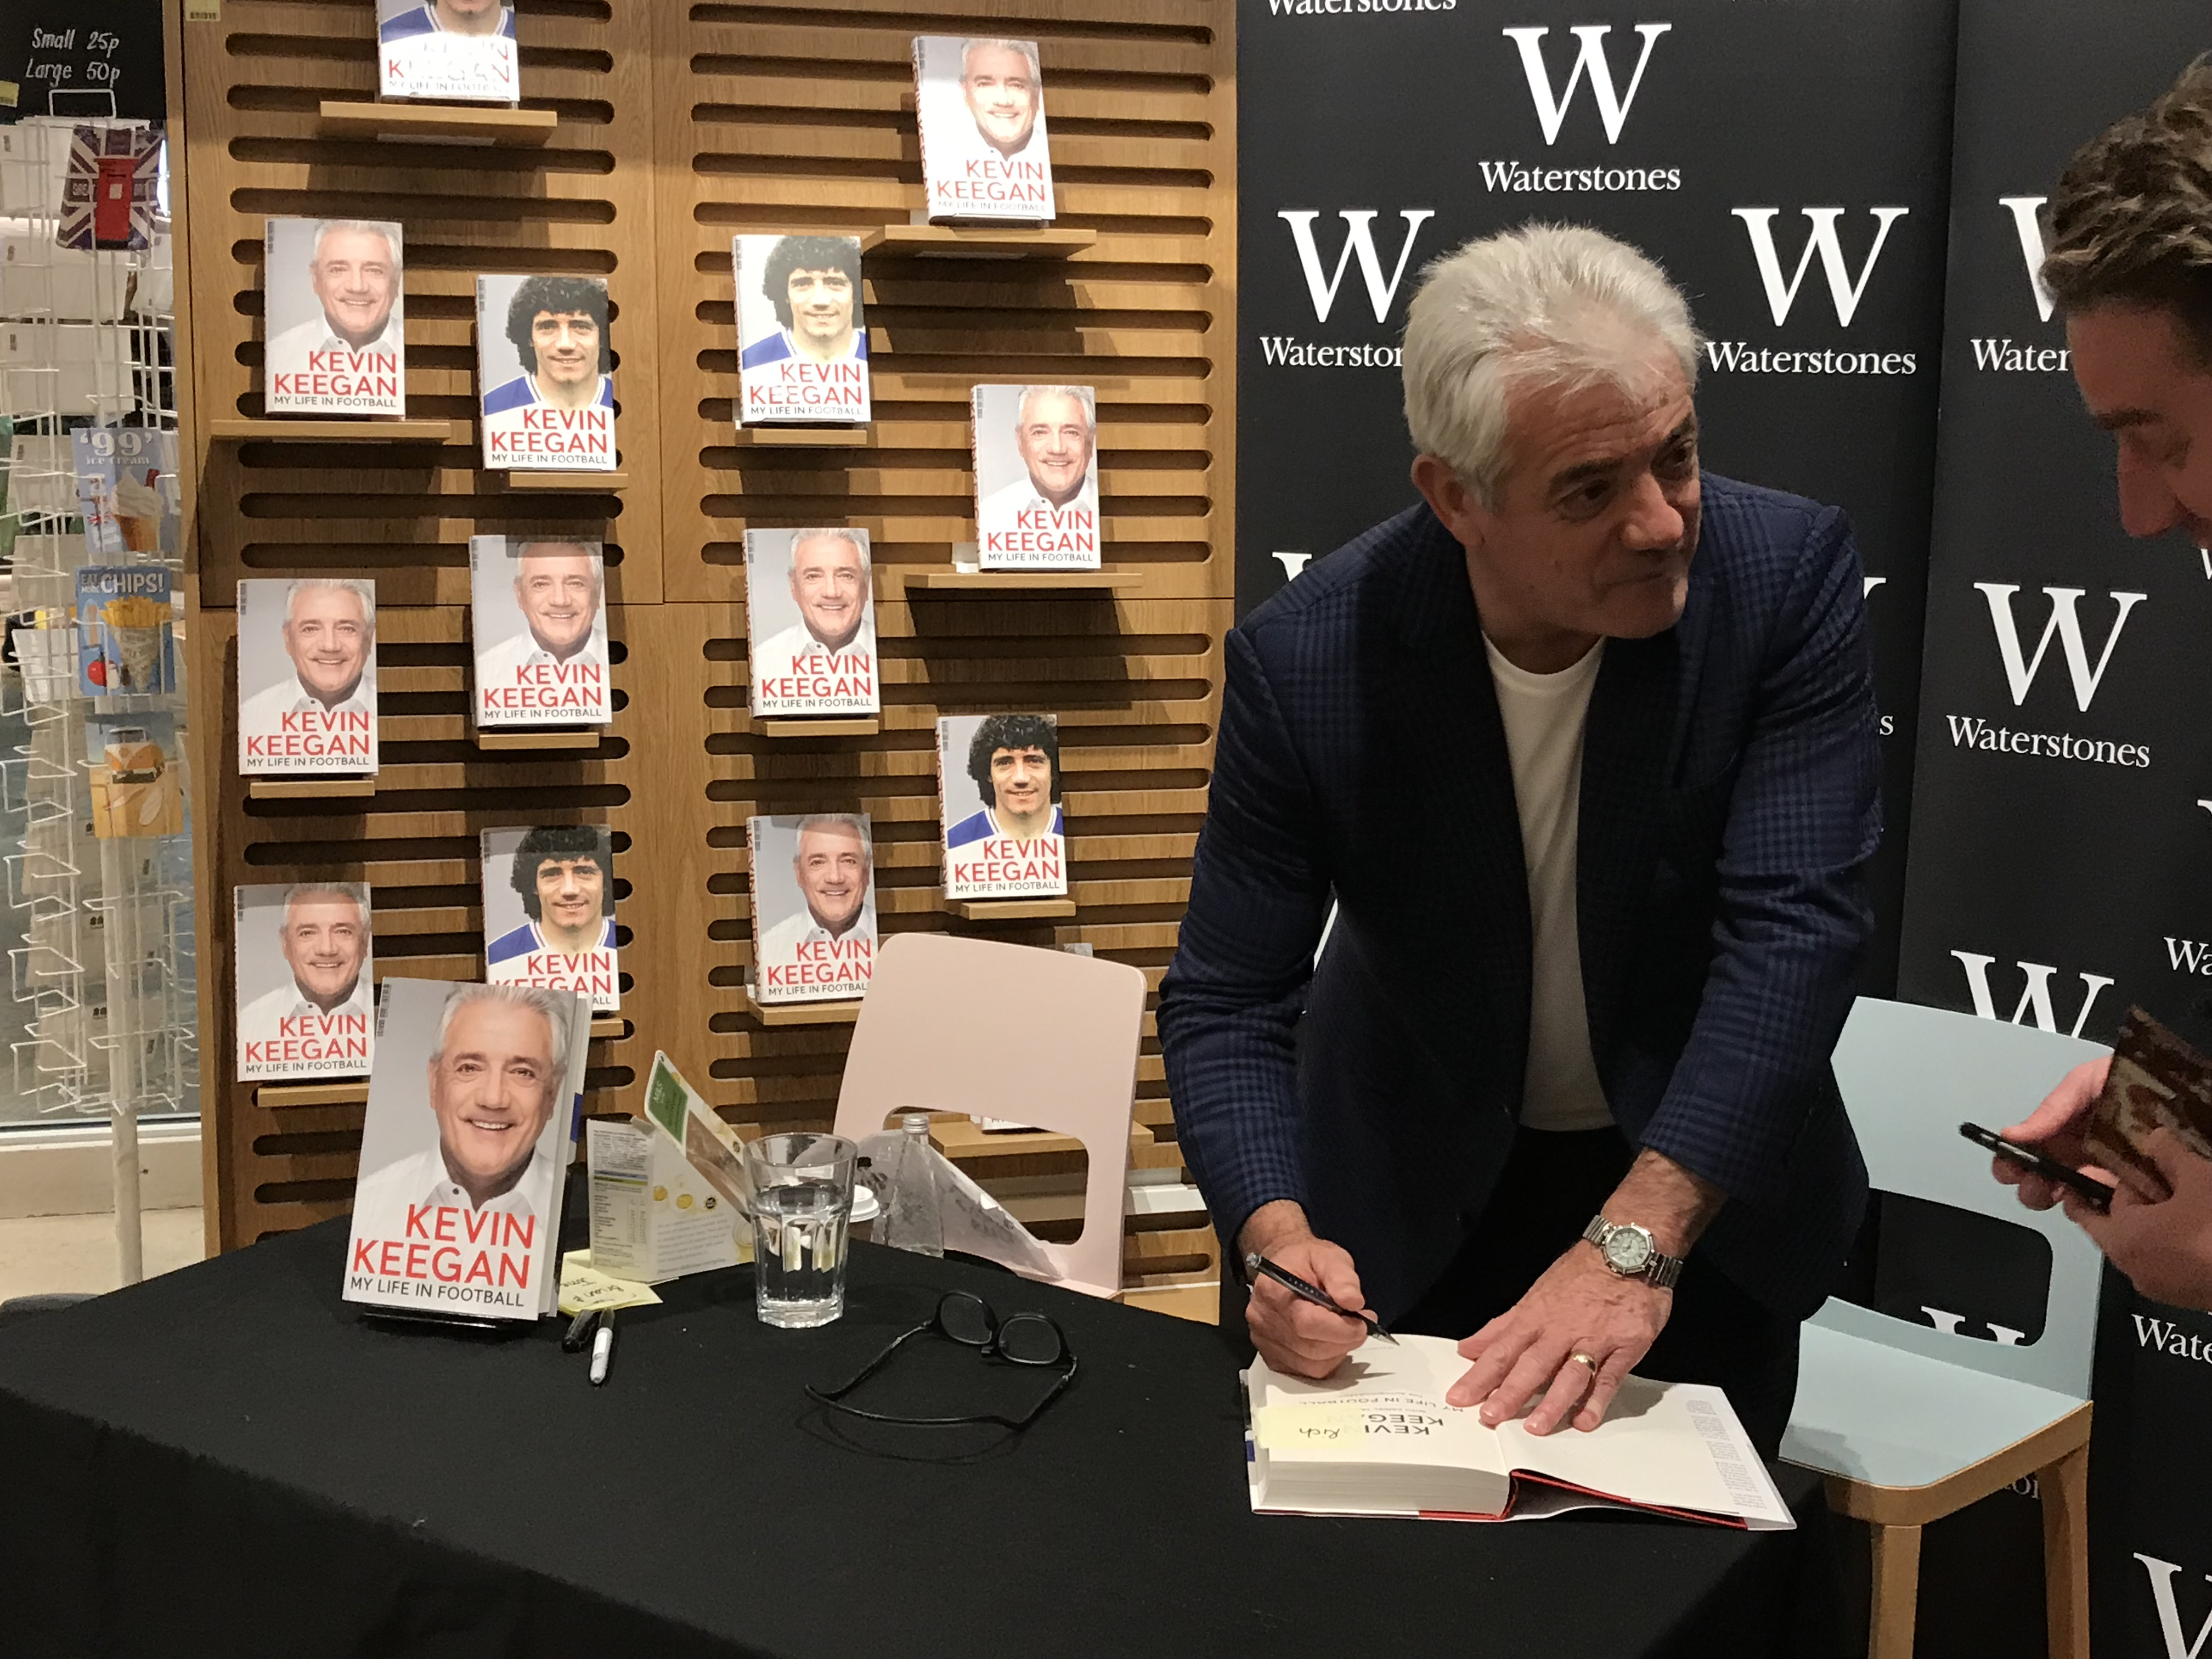 Kevin book signing Waterstones, Southampton